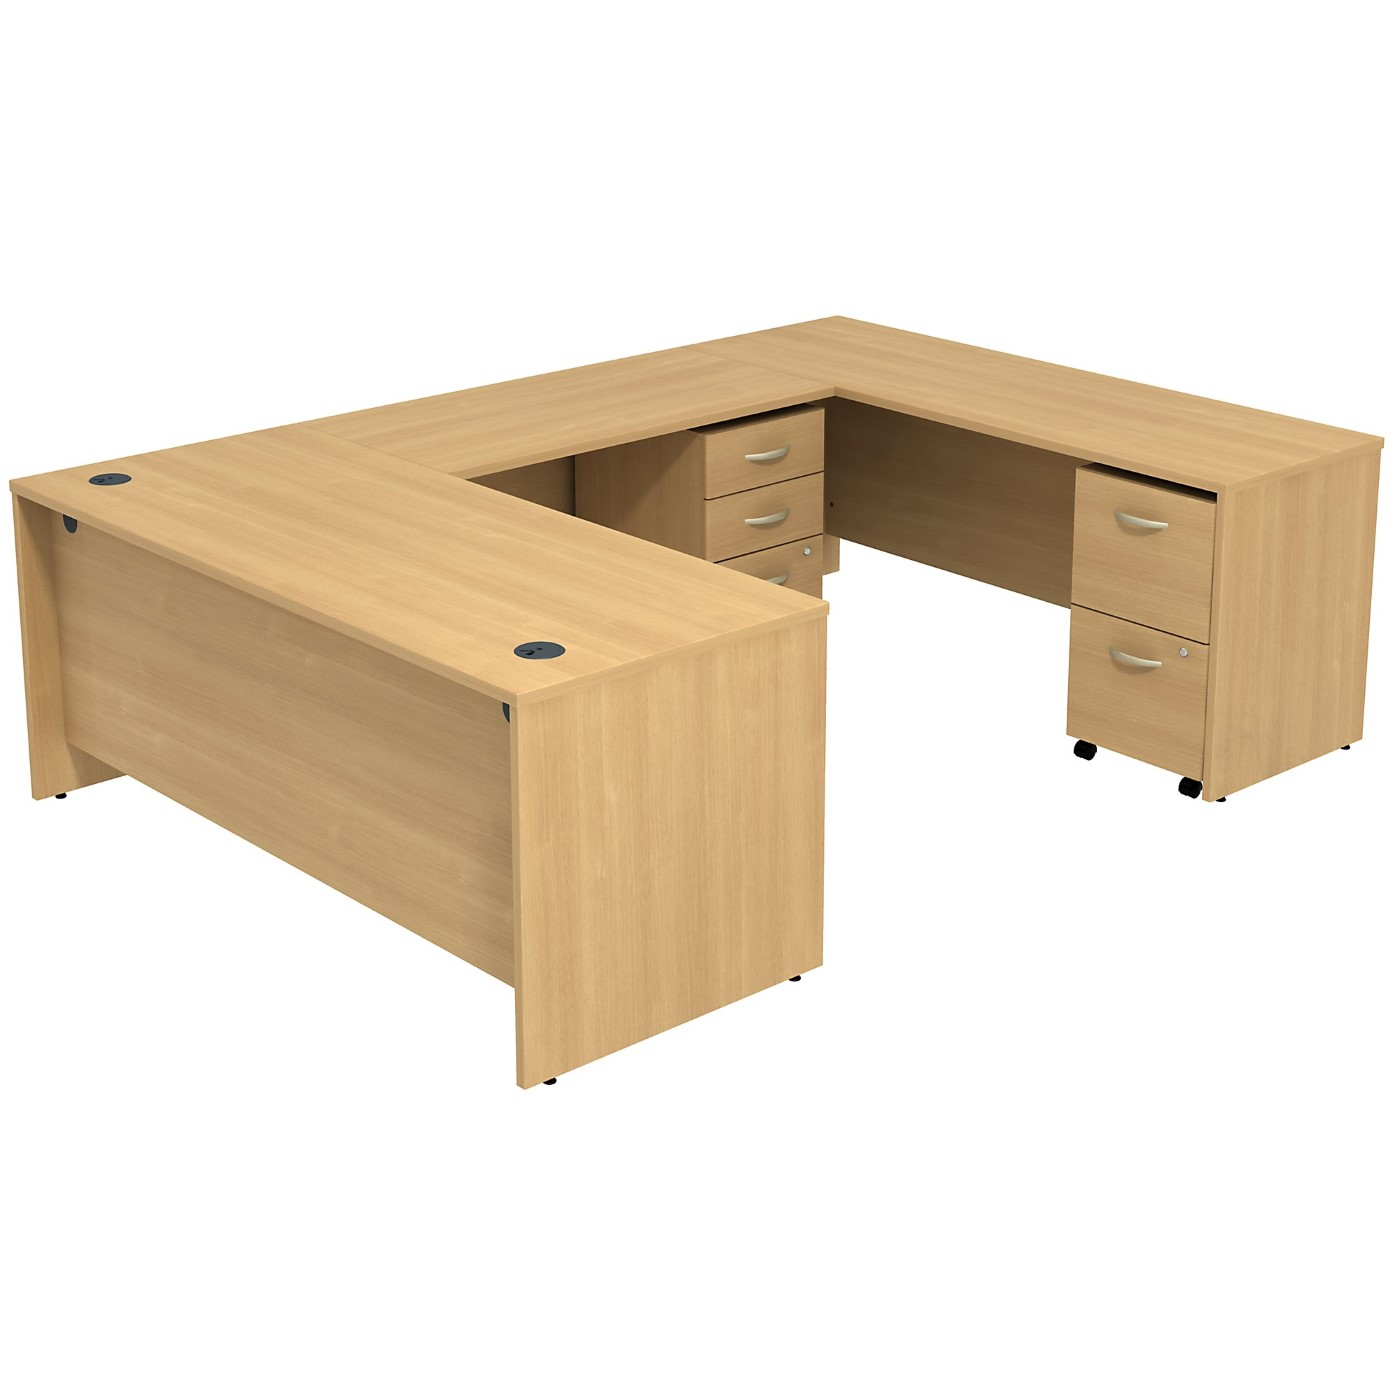 BUSH BUSINESS FURNITURE SERIES C U SHAPED DESK WITH 2 MOBILE PEDESTALS. FREE SHIPPING